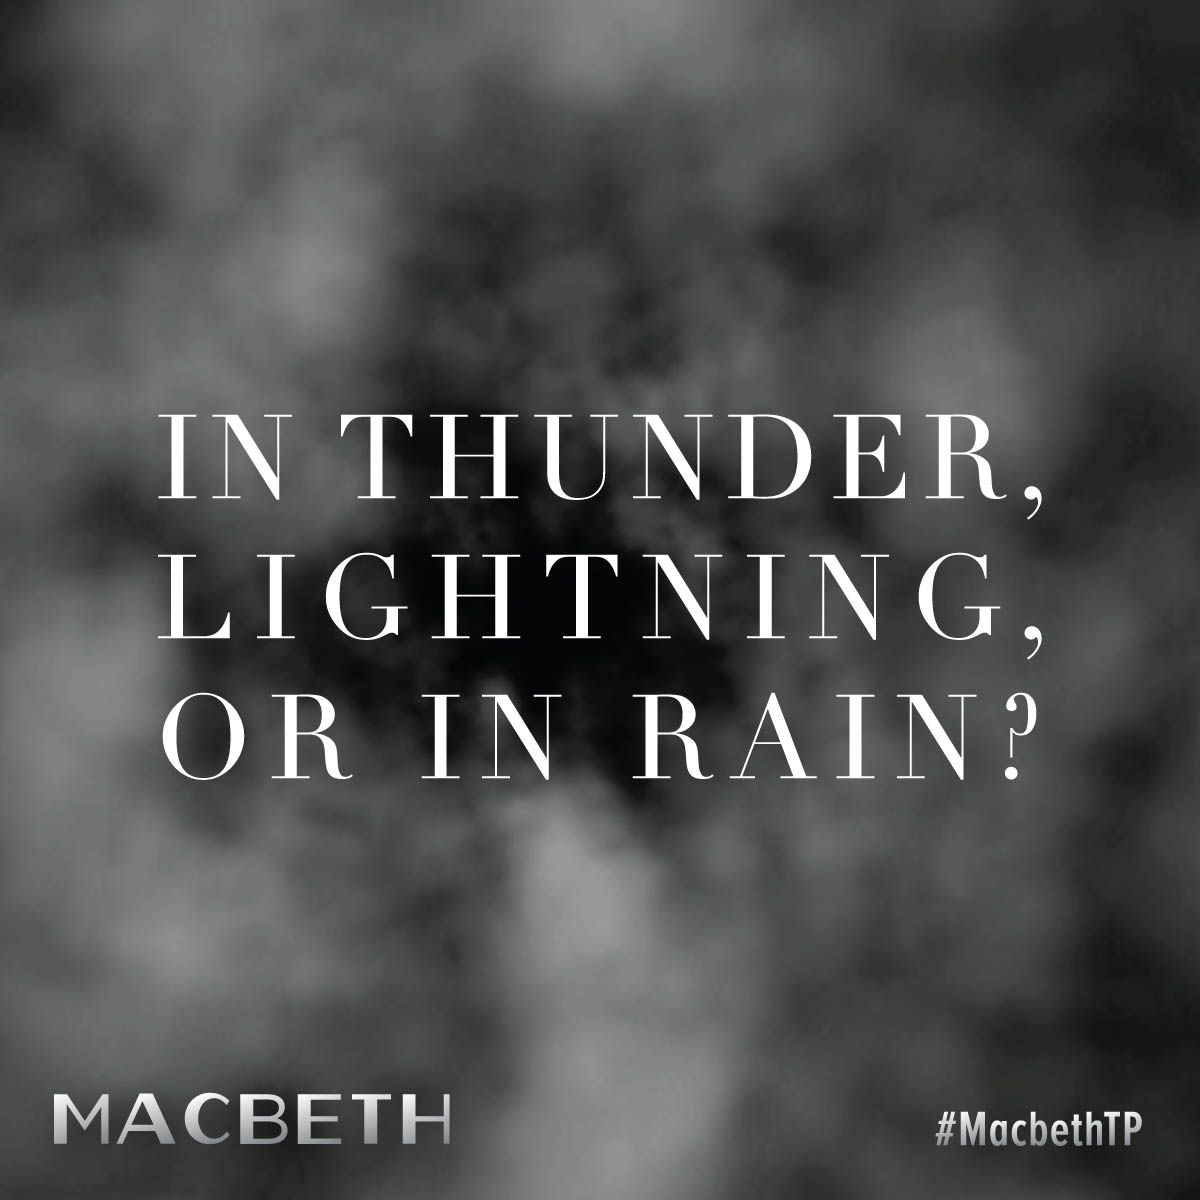 in thunder lightning or in rain macbethtp macbeth quotes macbeth quotes acircmiddot